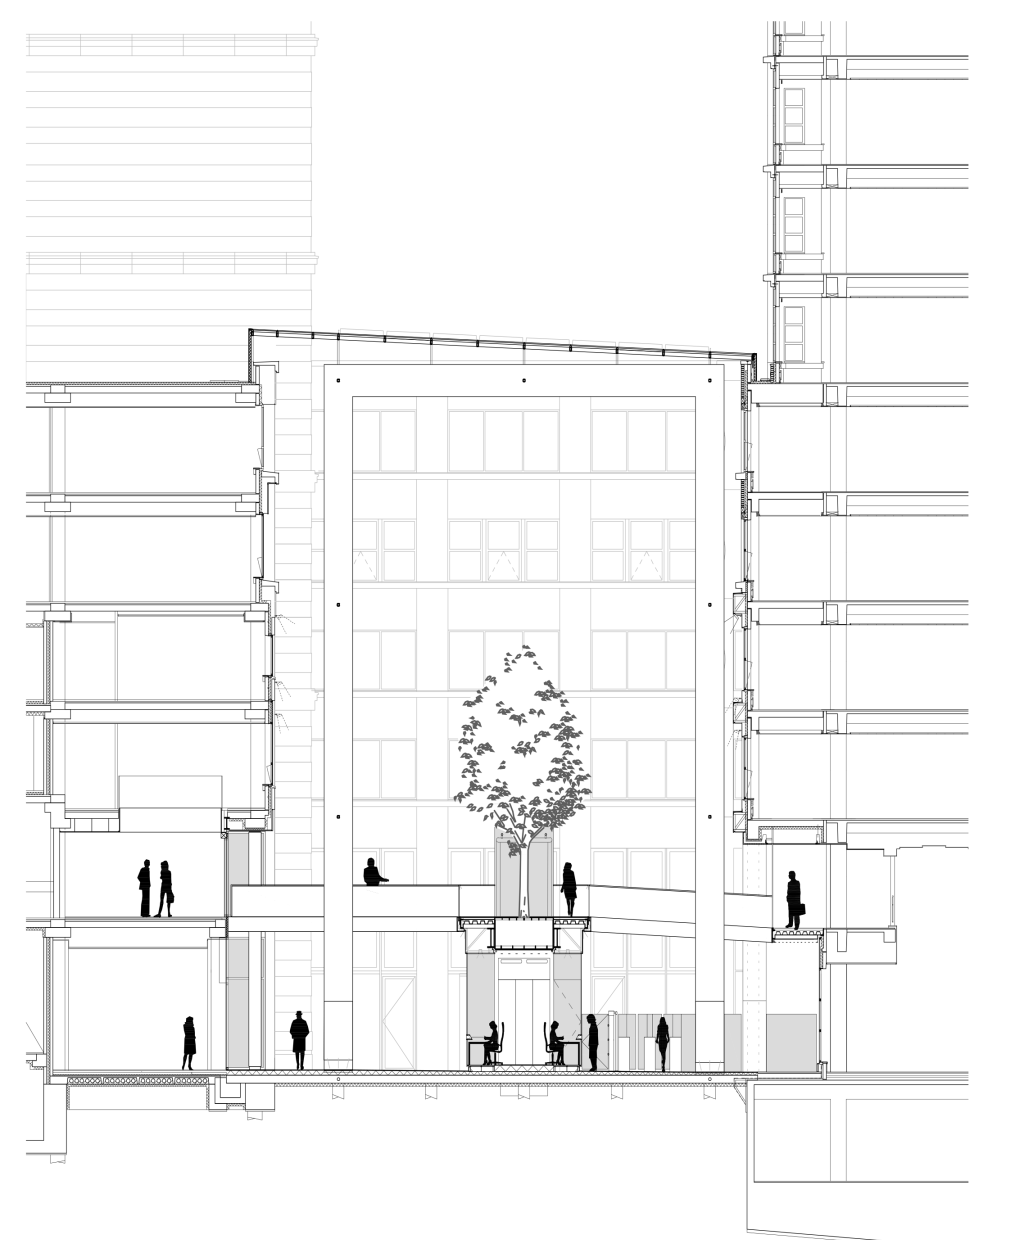 From external space to atrium